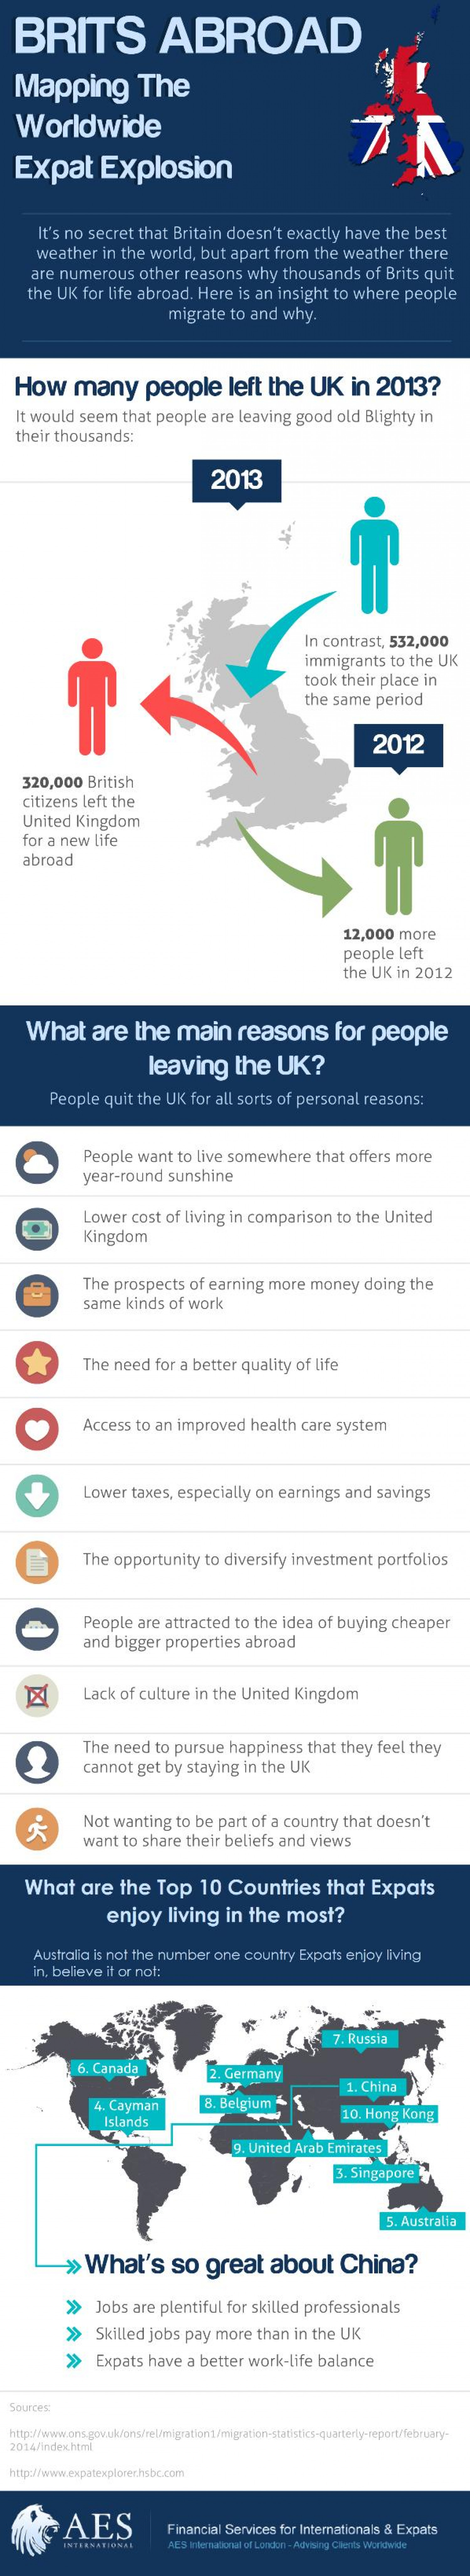 BRITS ABROAD: Mapping the Worldwide Expat Explosion Infographic